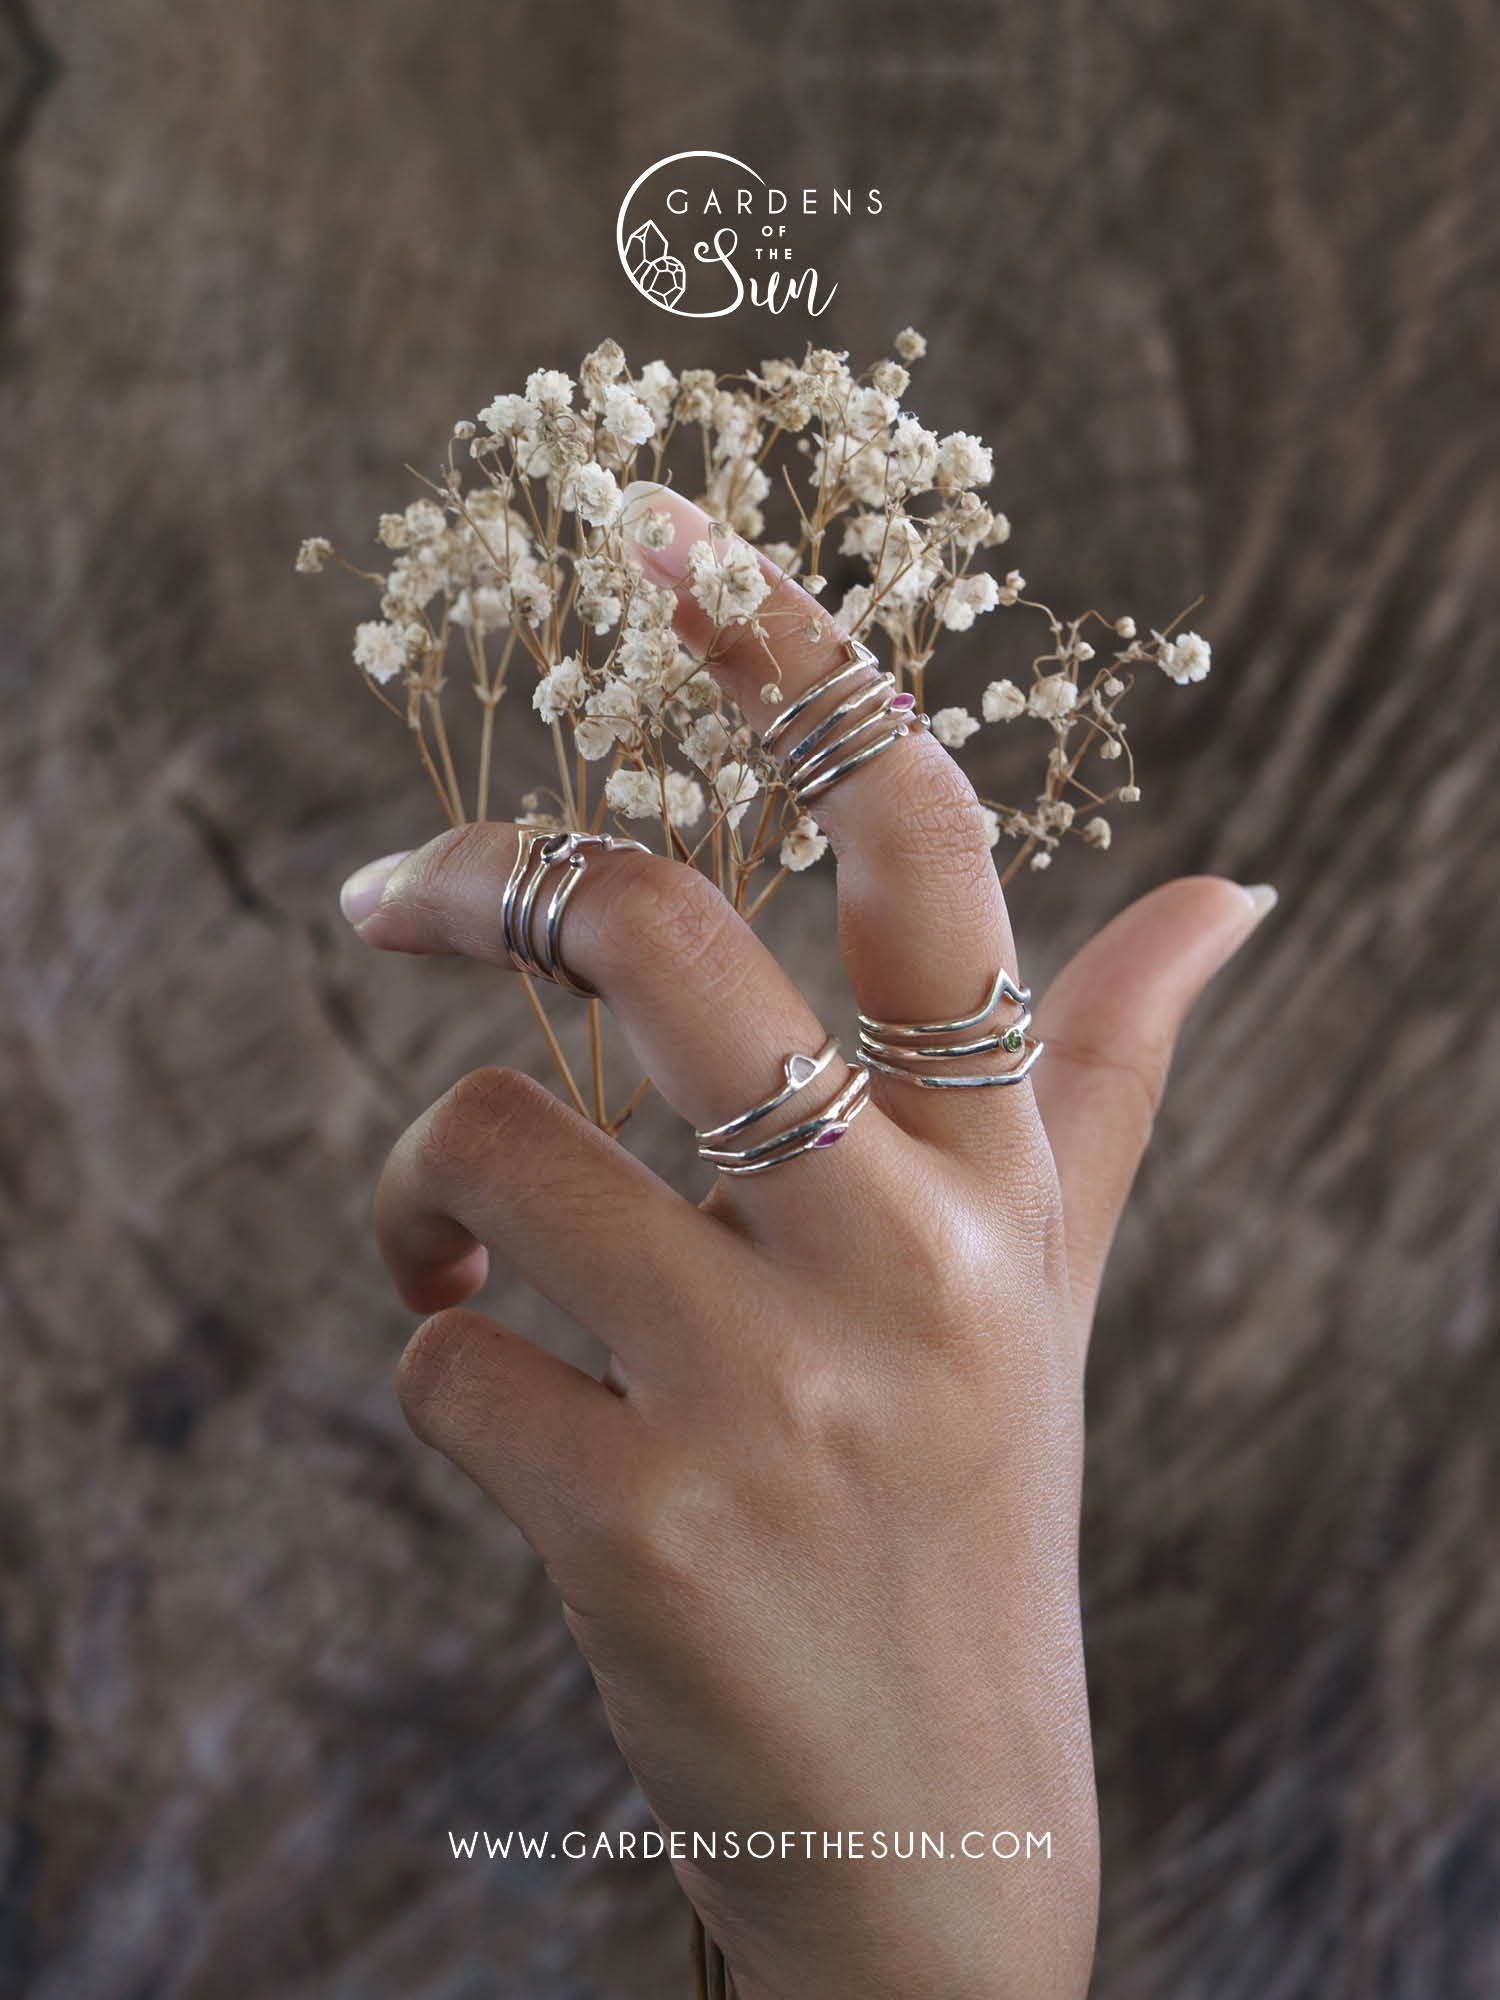 Dainty silver stacking rings